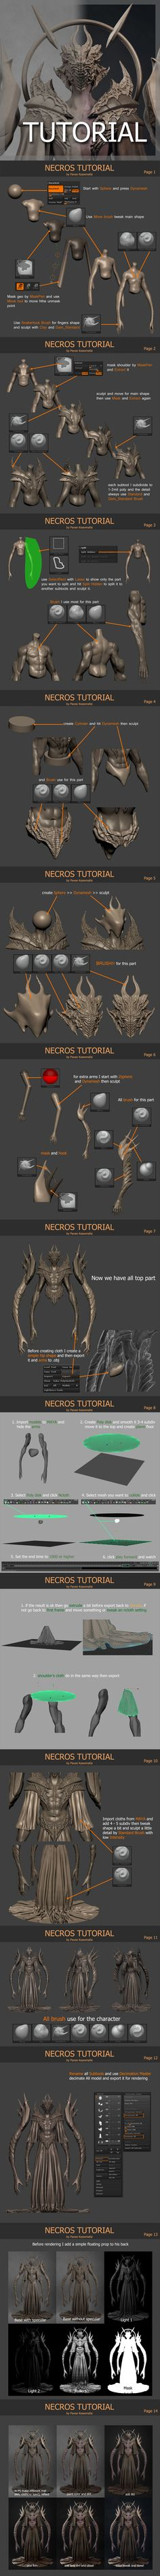 Necros [Tutorial] by Khempavee on DeviantArt